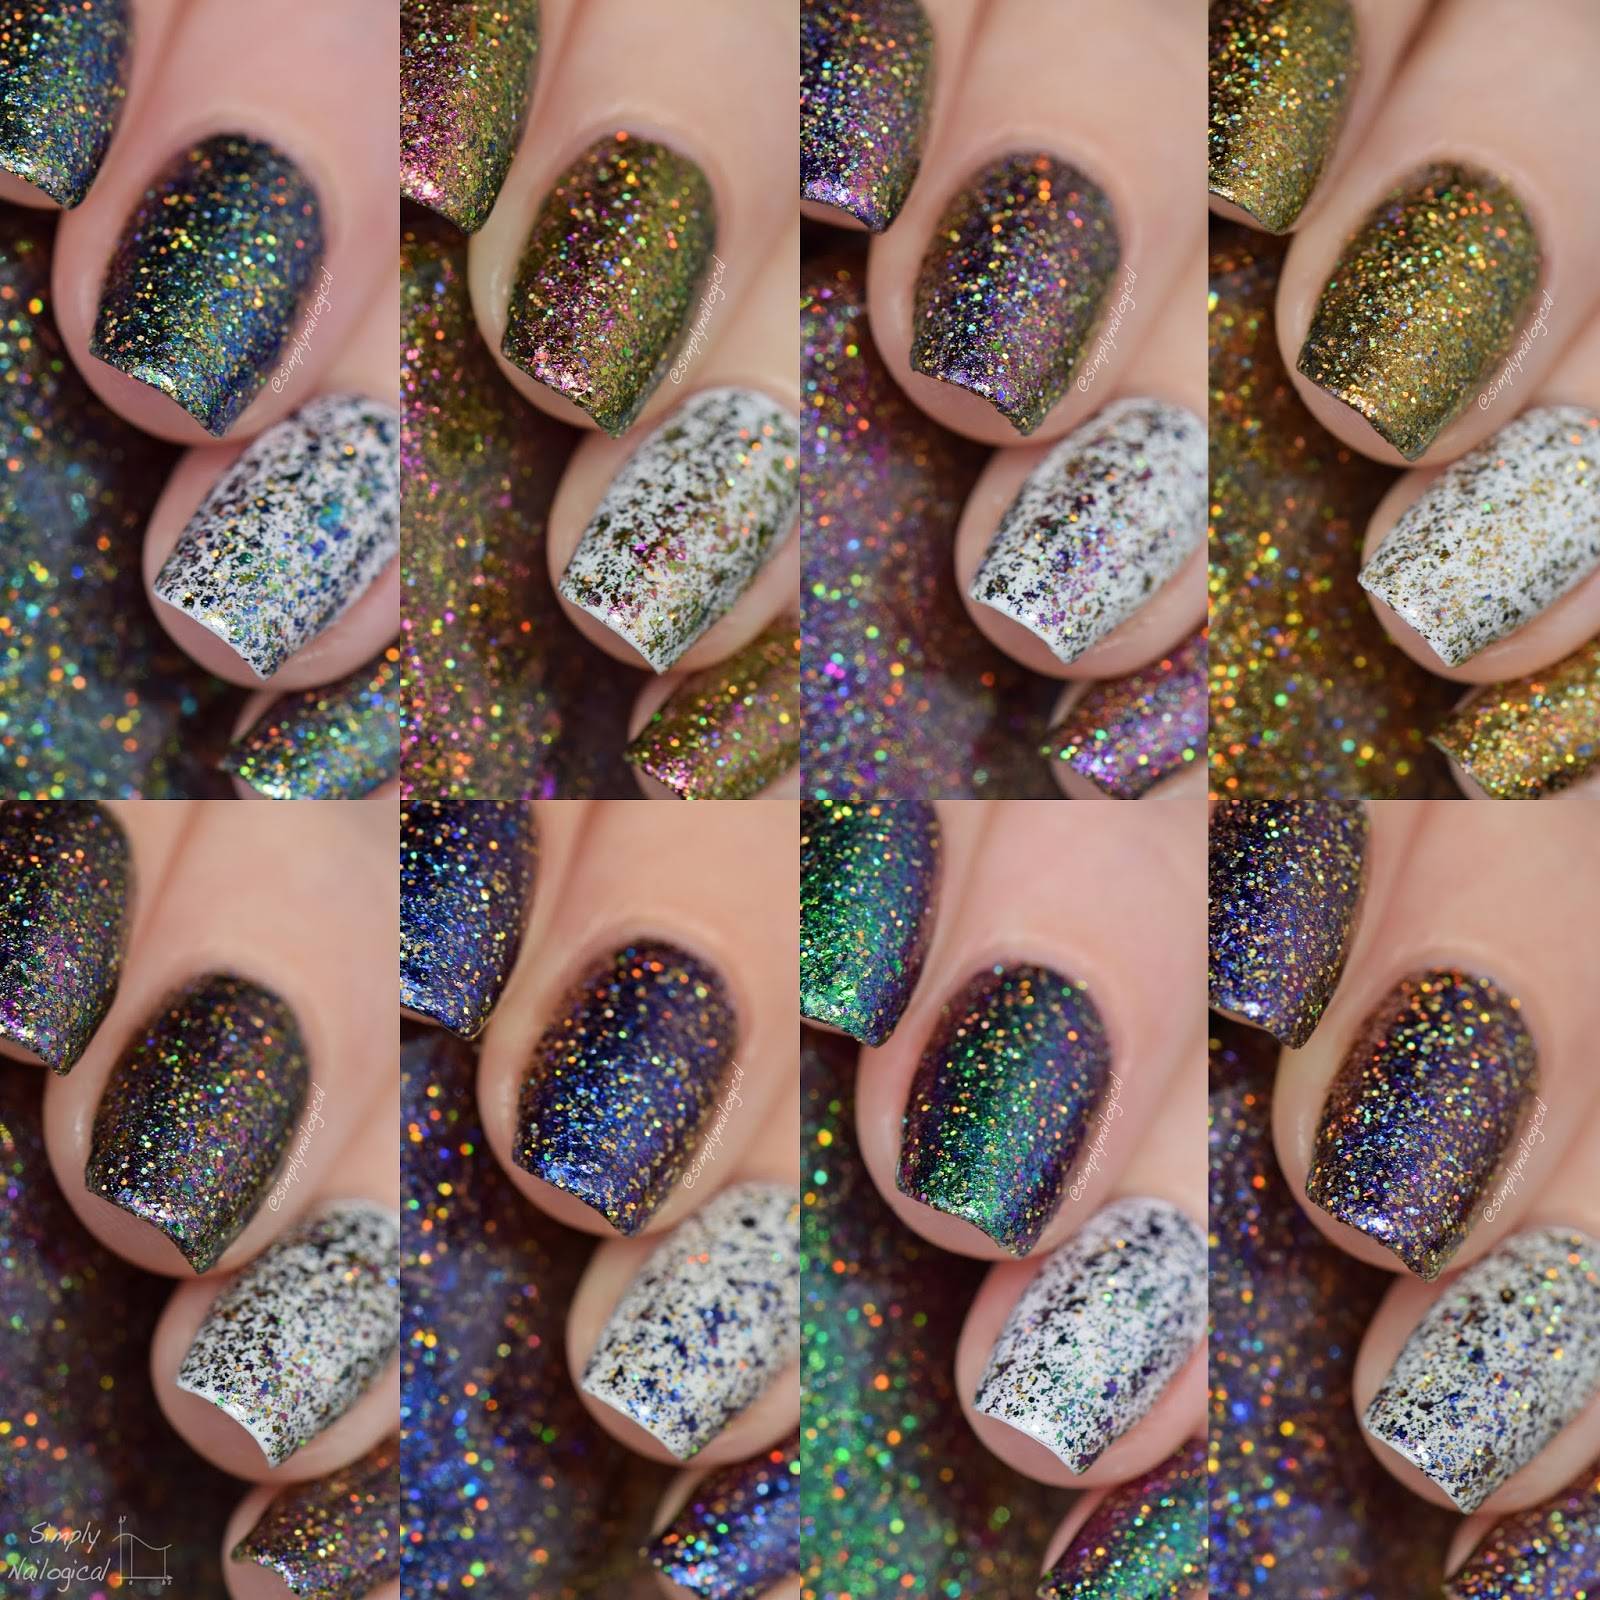 Starrily - Heavenly holos swatches